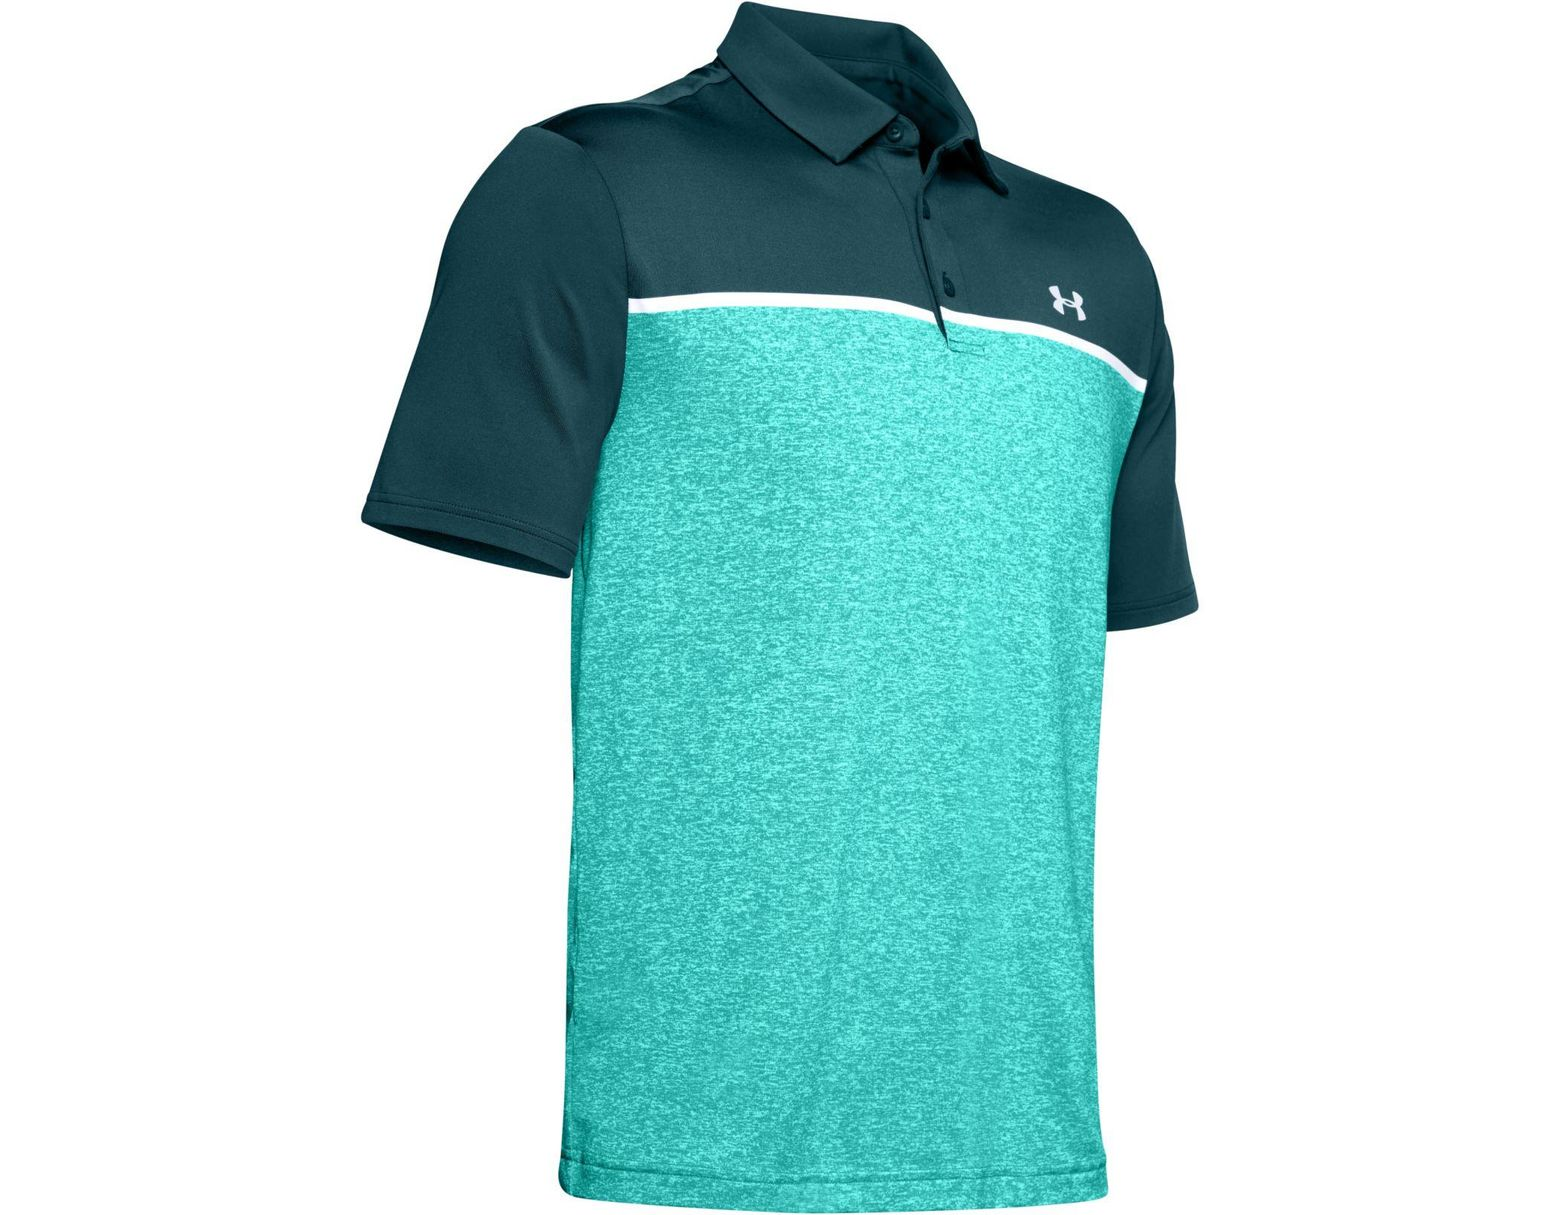 377571d3 Under Armour Colorblocked Playoff Polo in Blue for Men - Lyst